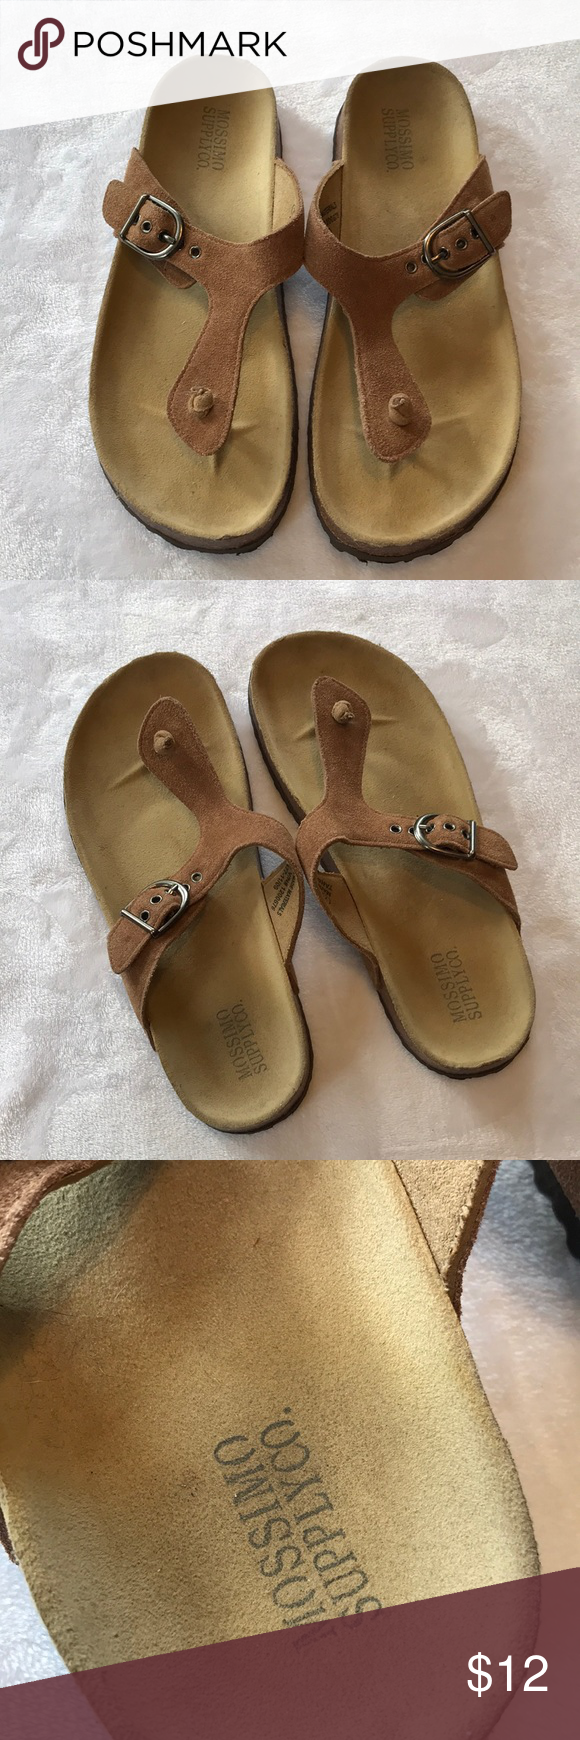 e9dfc9dba280 Mossimo Supply Co Target Leather Footbed Sandals 7 Mossimo Supply Co Target  Leather Footbed Sandals